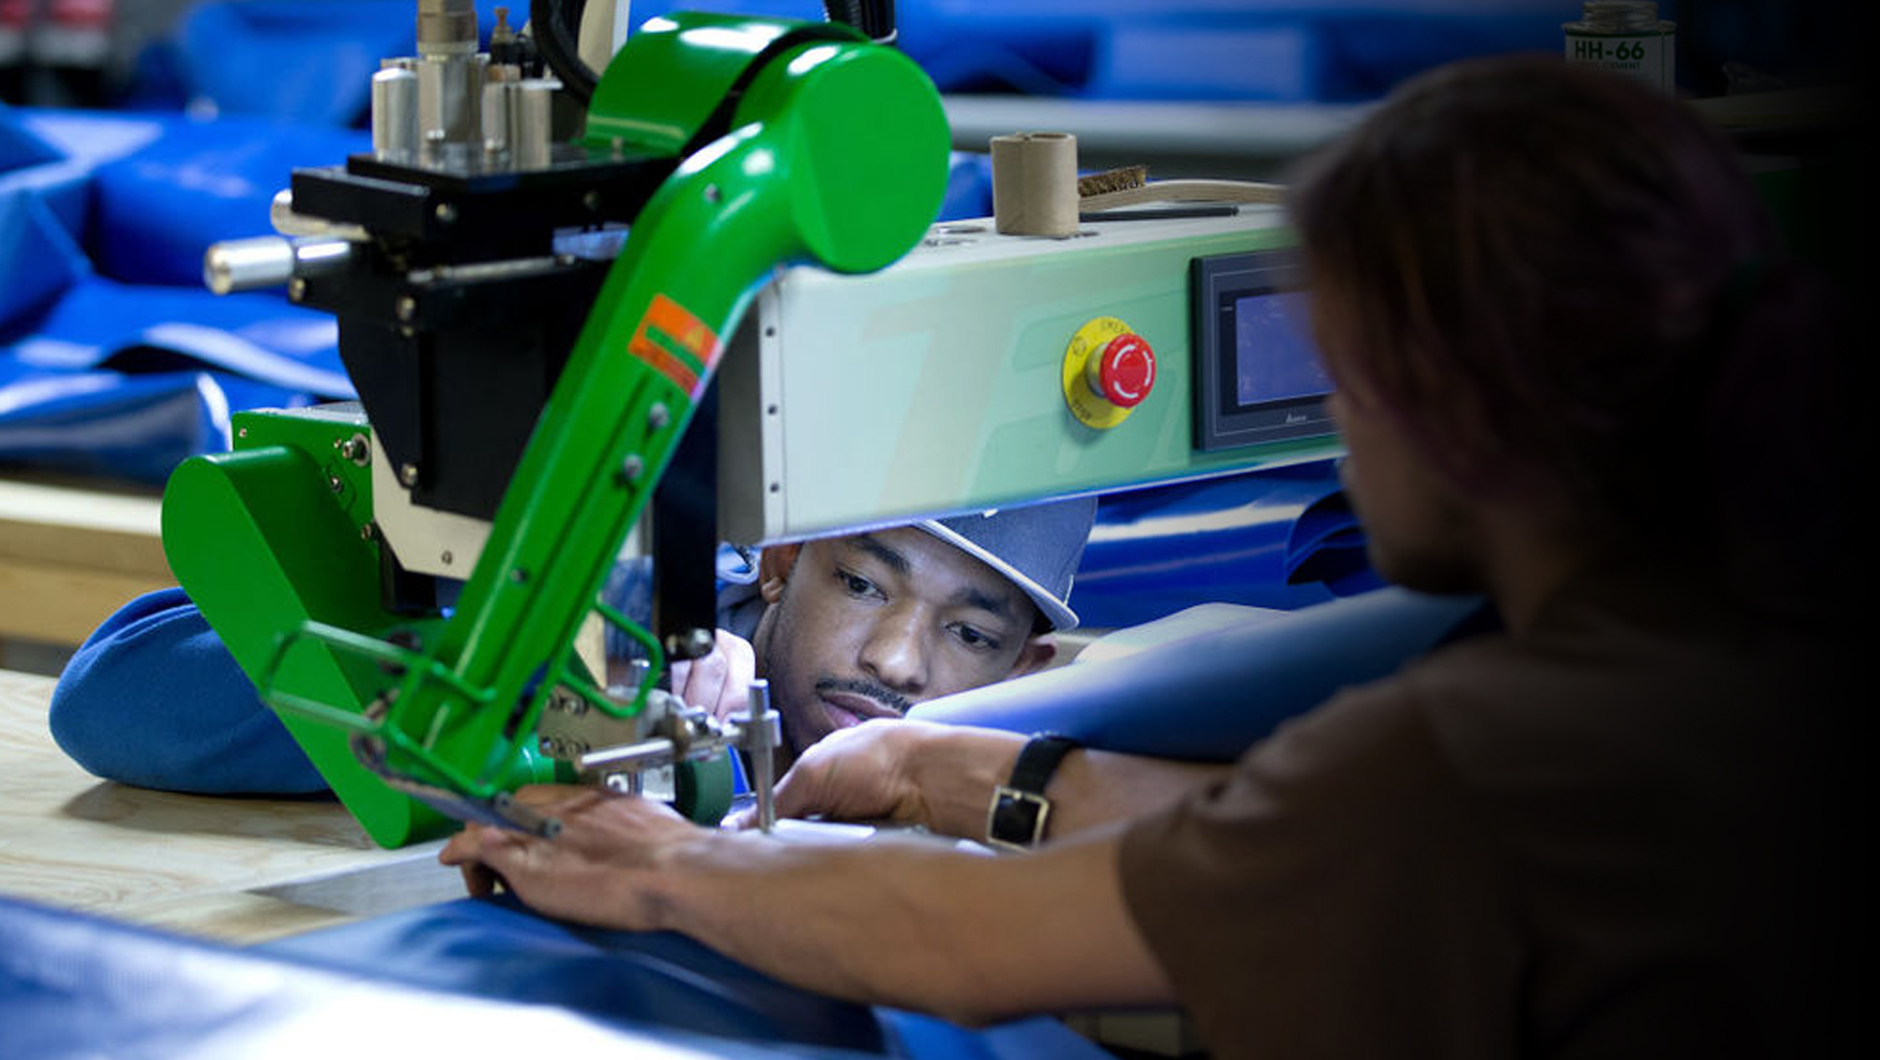 kool shield vendor sourcing sewing manufacturing process